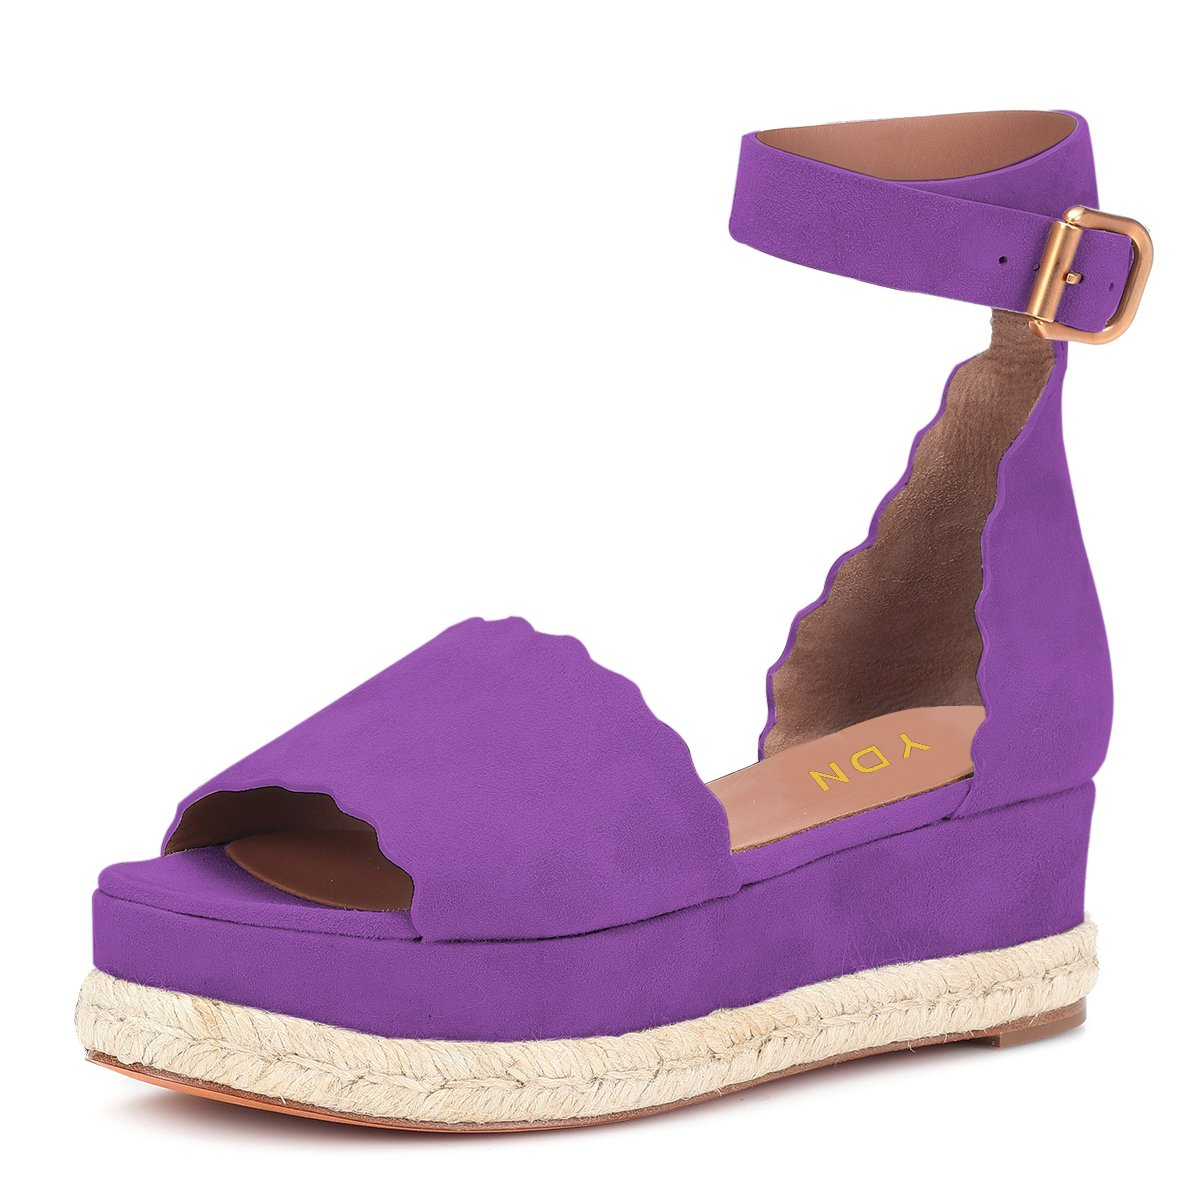 YDN Women Espadrille Peep Toe Ankle Straps Wedge Sandals Low Heels Platform Shoes with Buckle B07DCQ1DHL 8.5 M US|Purple